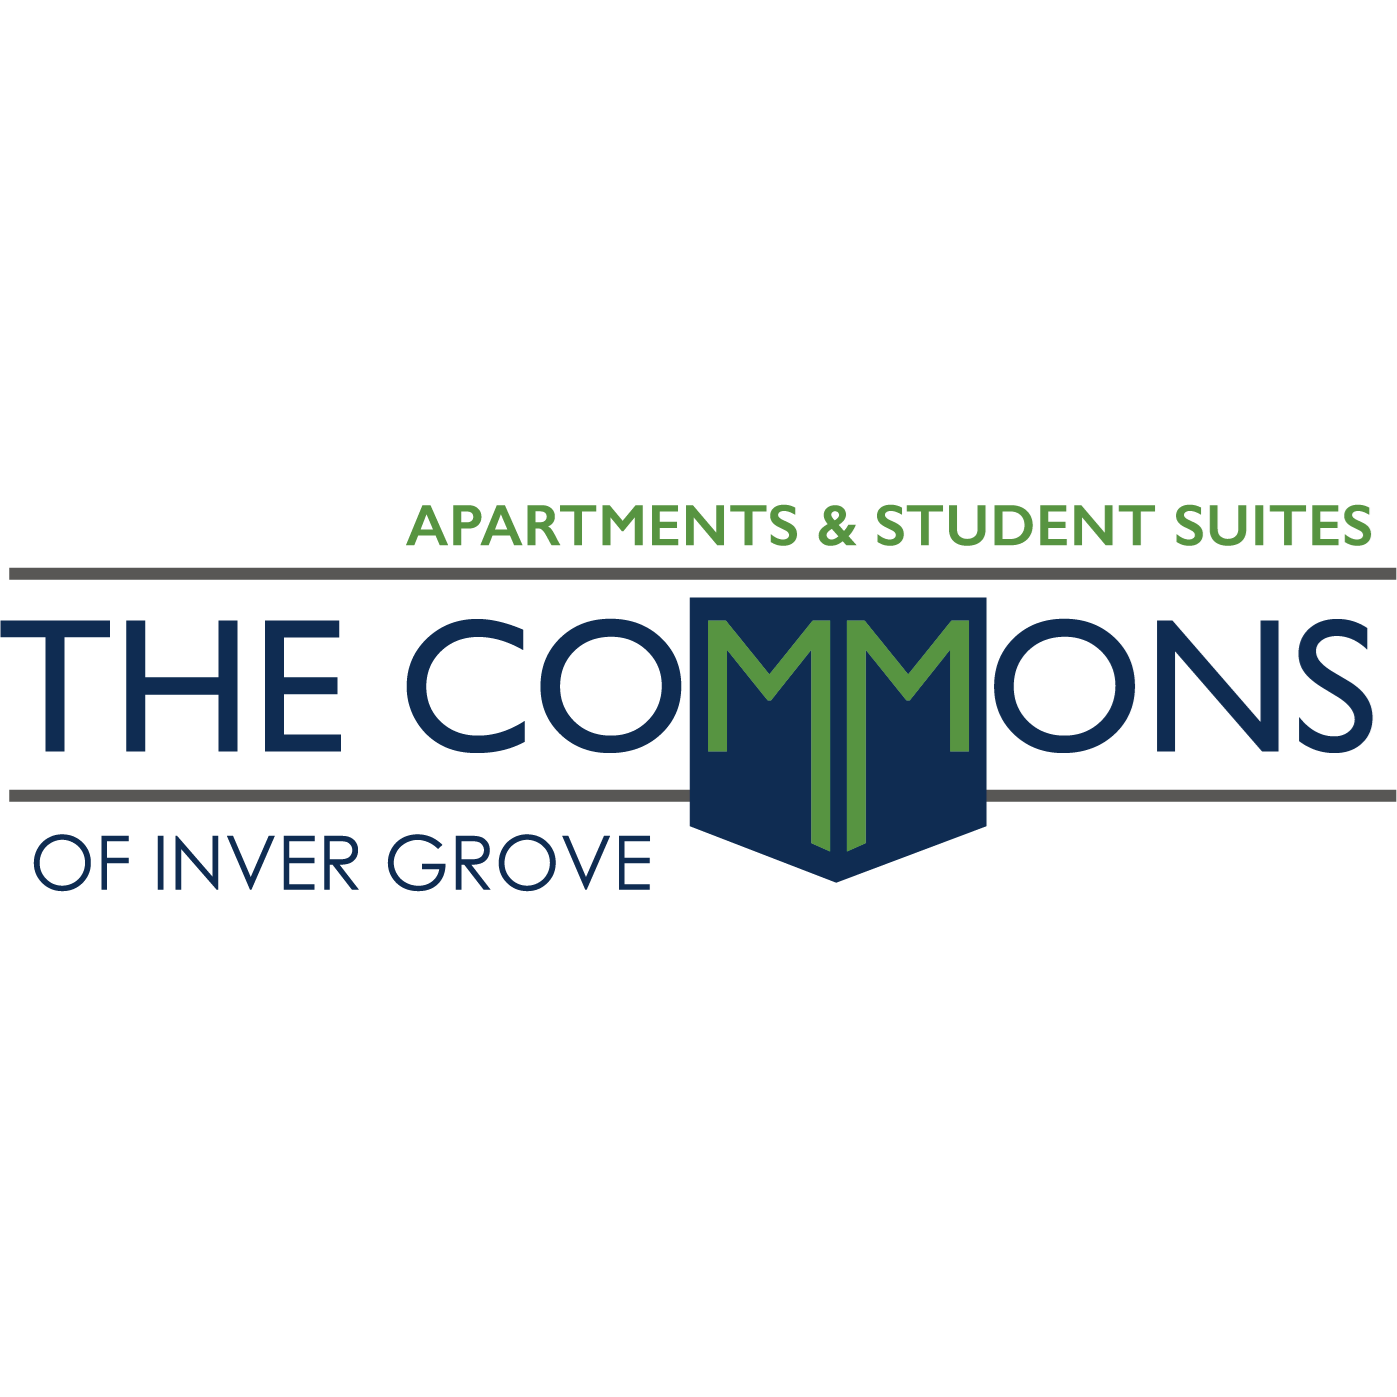 The Commons of Inver Grove image 5